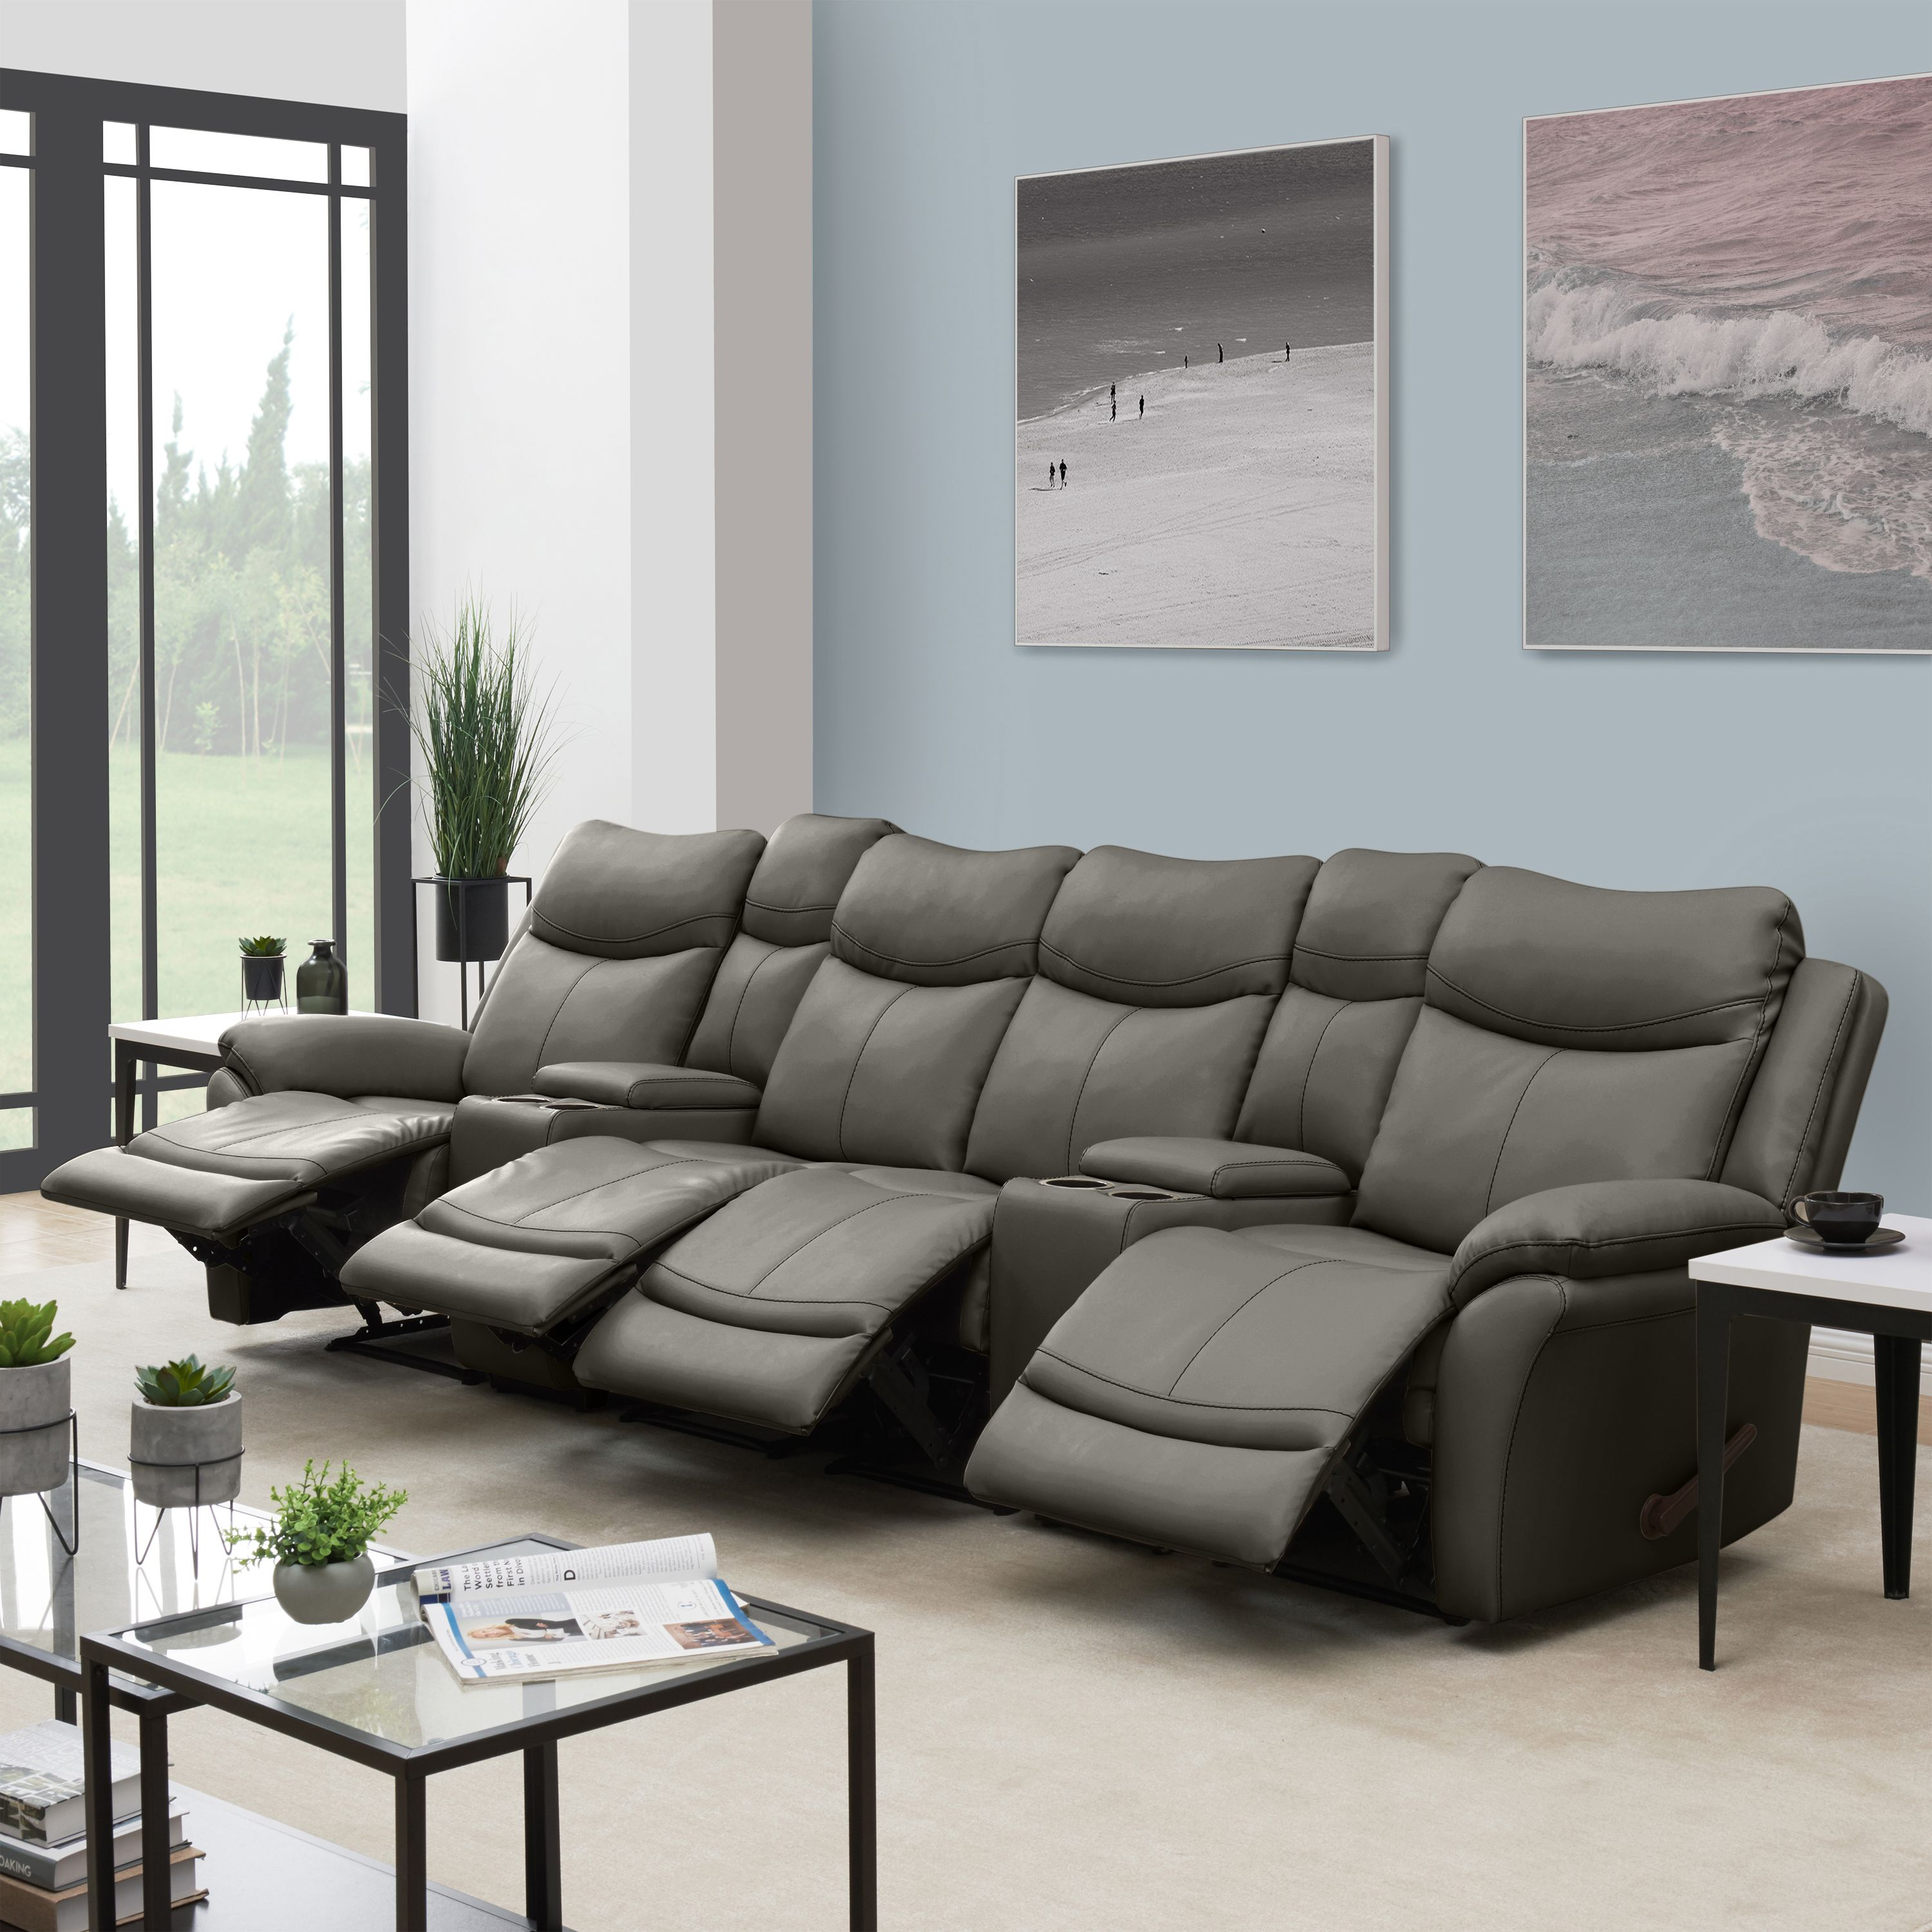 Home In 2020 Reclining Sofa Comfortable Sofa Recliner Cover